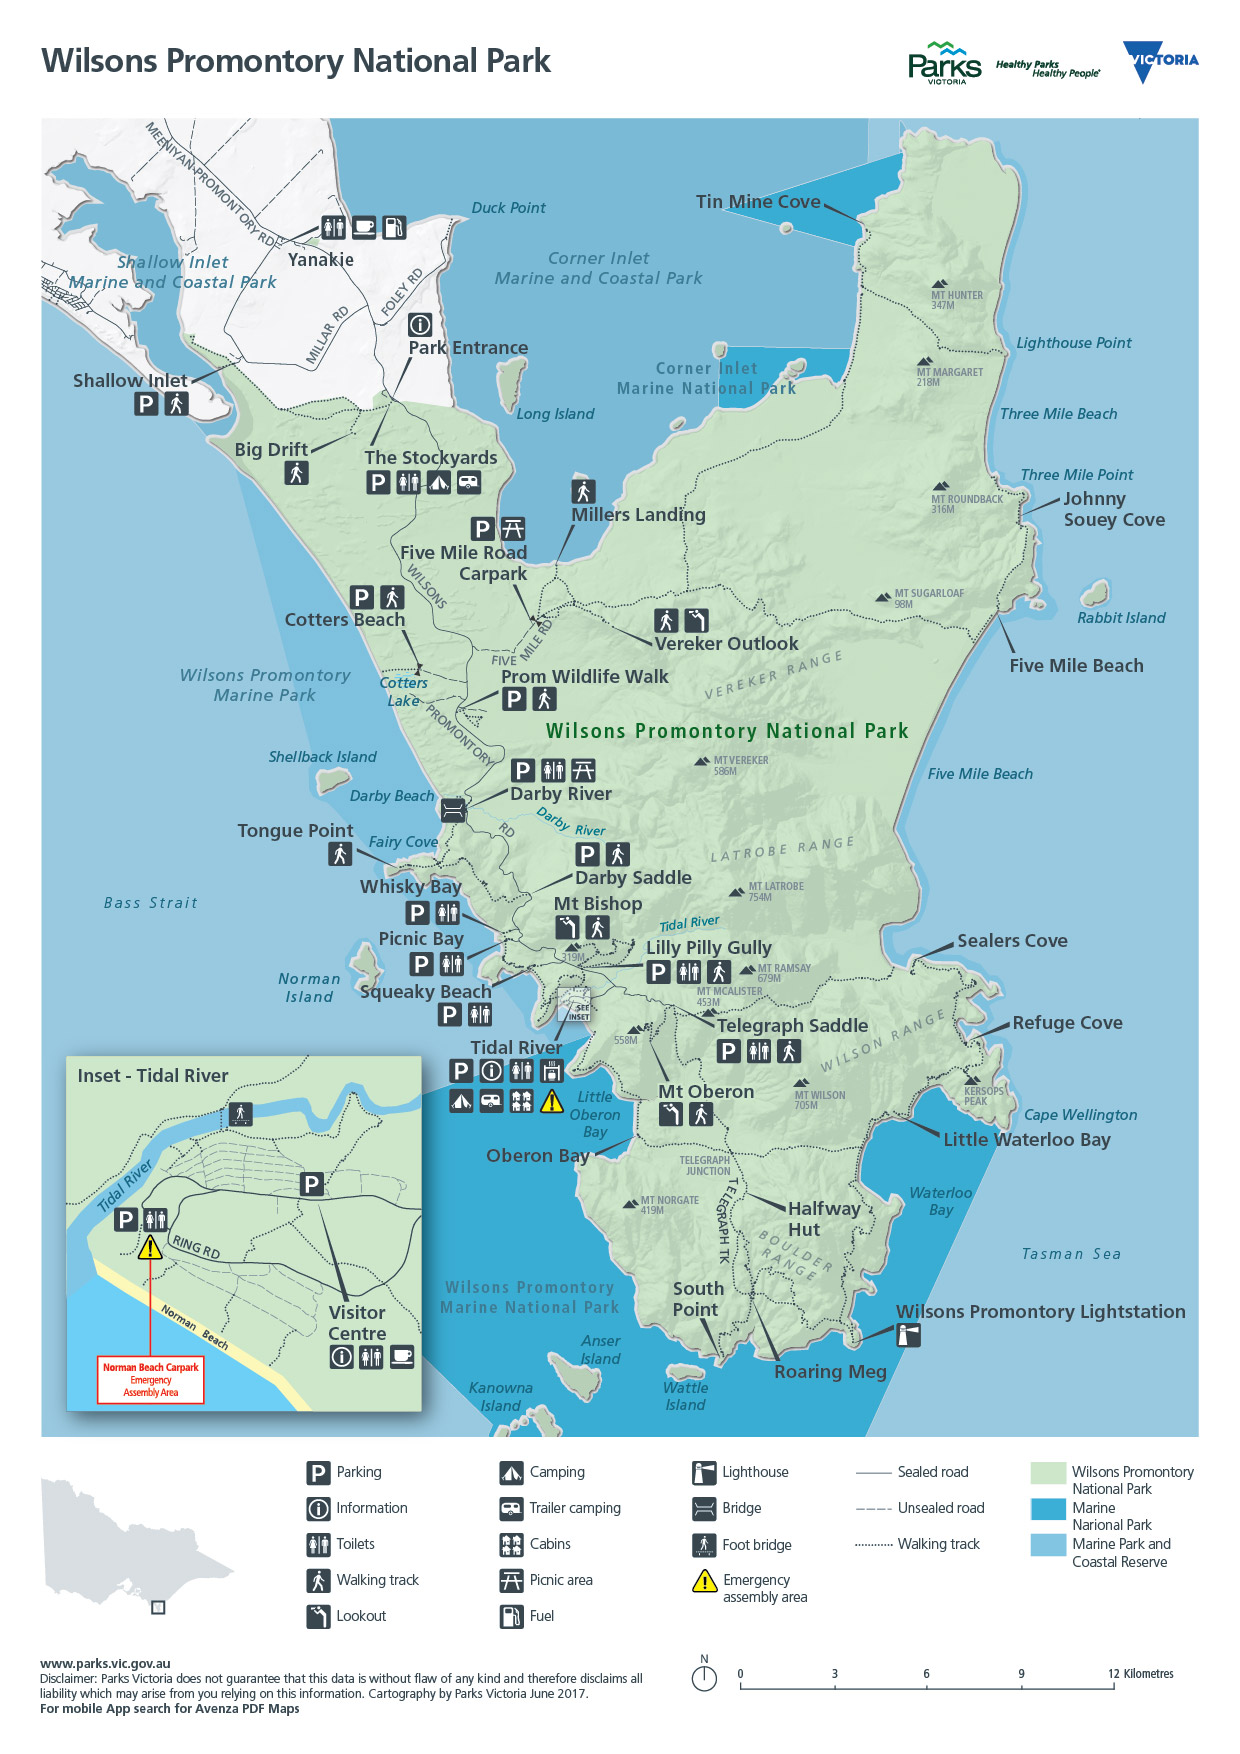 Wilsons Promontory Map Wilsons Promontory National Park   Entire Park   Parks Victoria  Wilsons Promontory Map